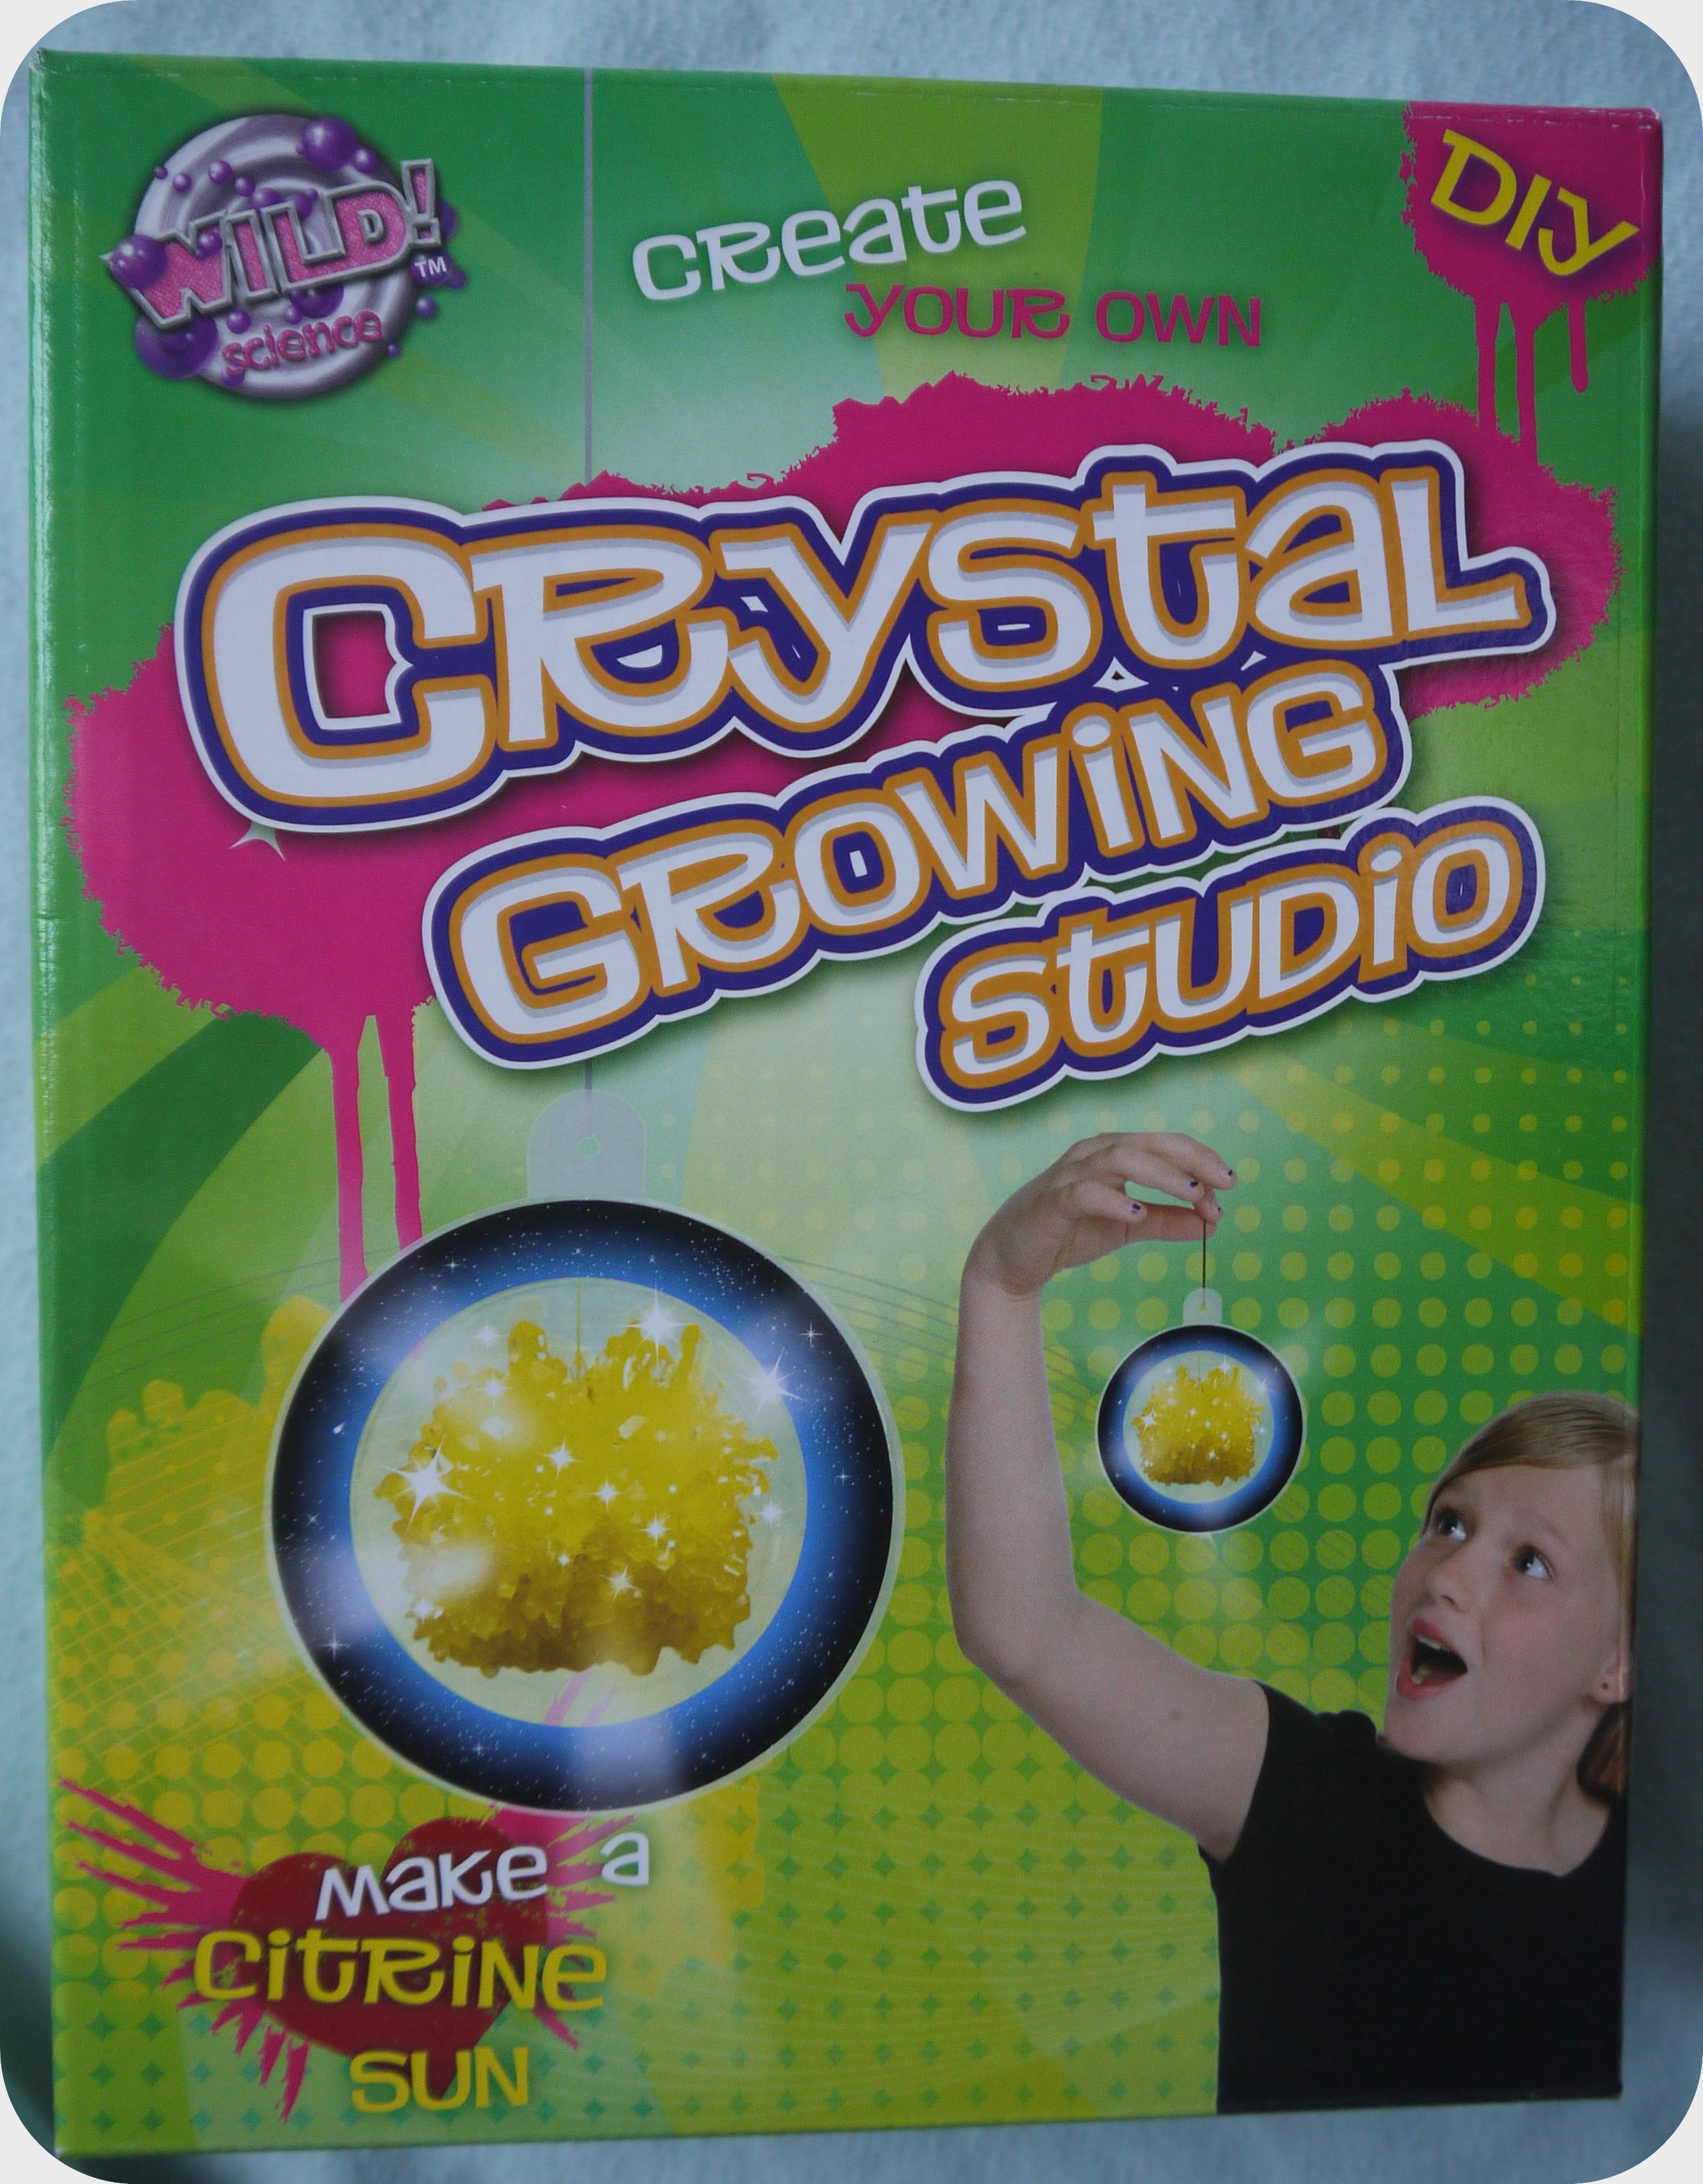 Grow your own Crystals in days… with Interplay Crystal growing studio